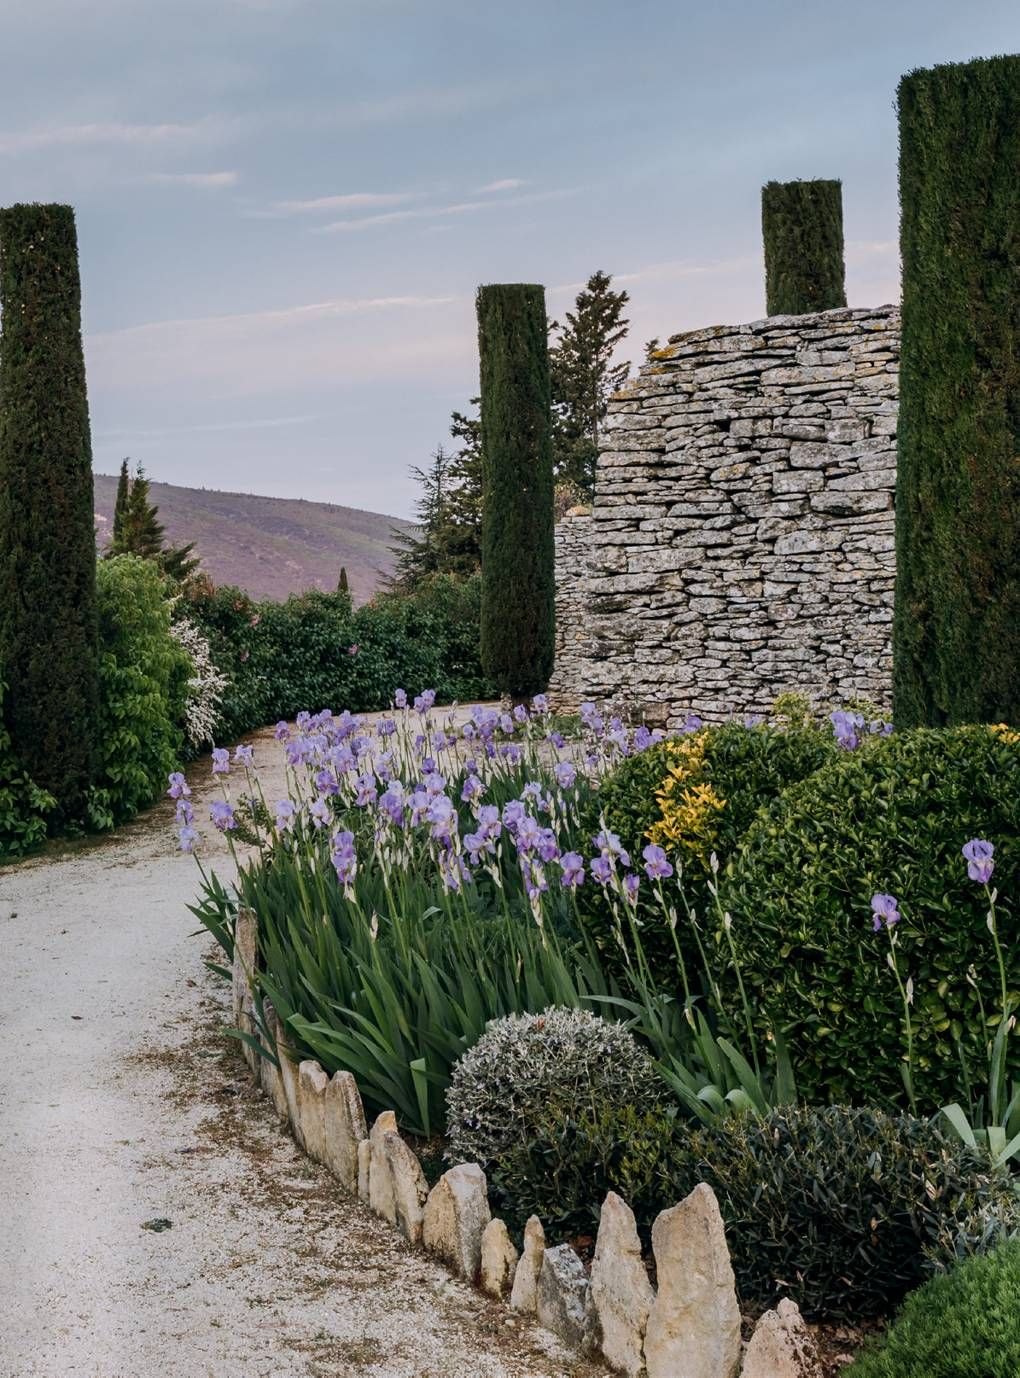 A blissful garden on a Provençal hillside